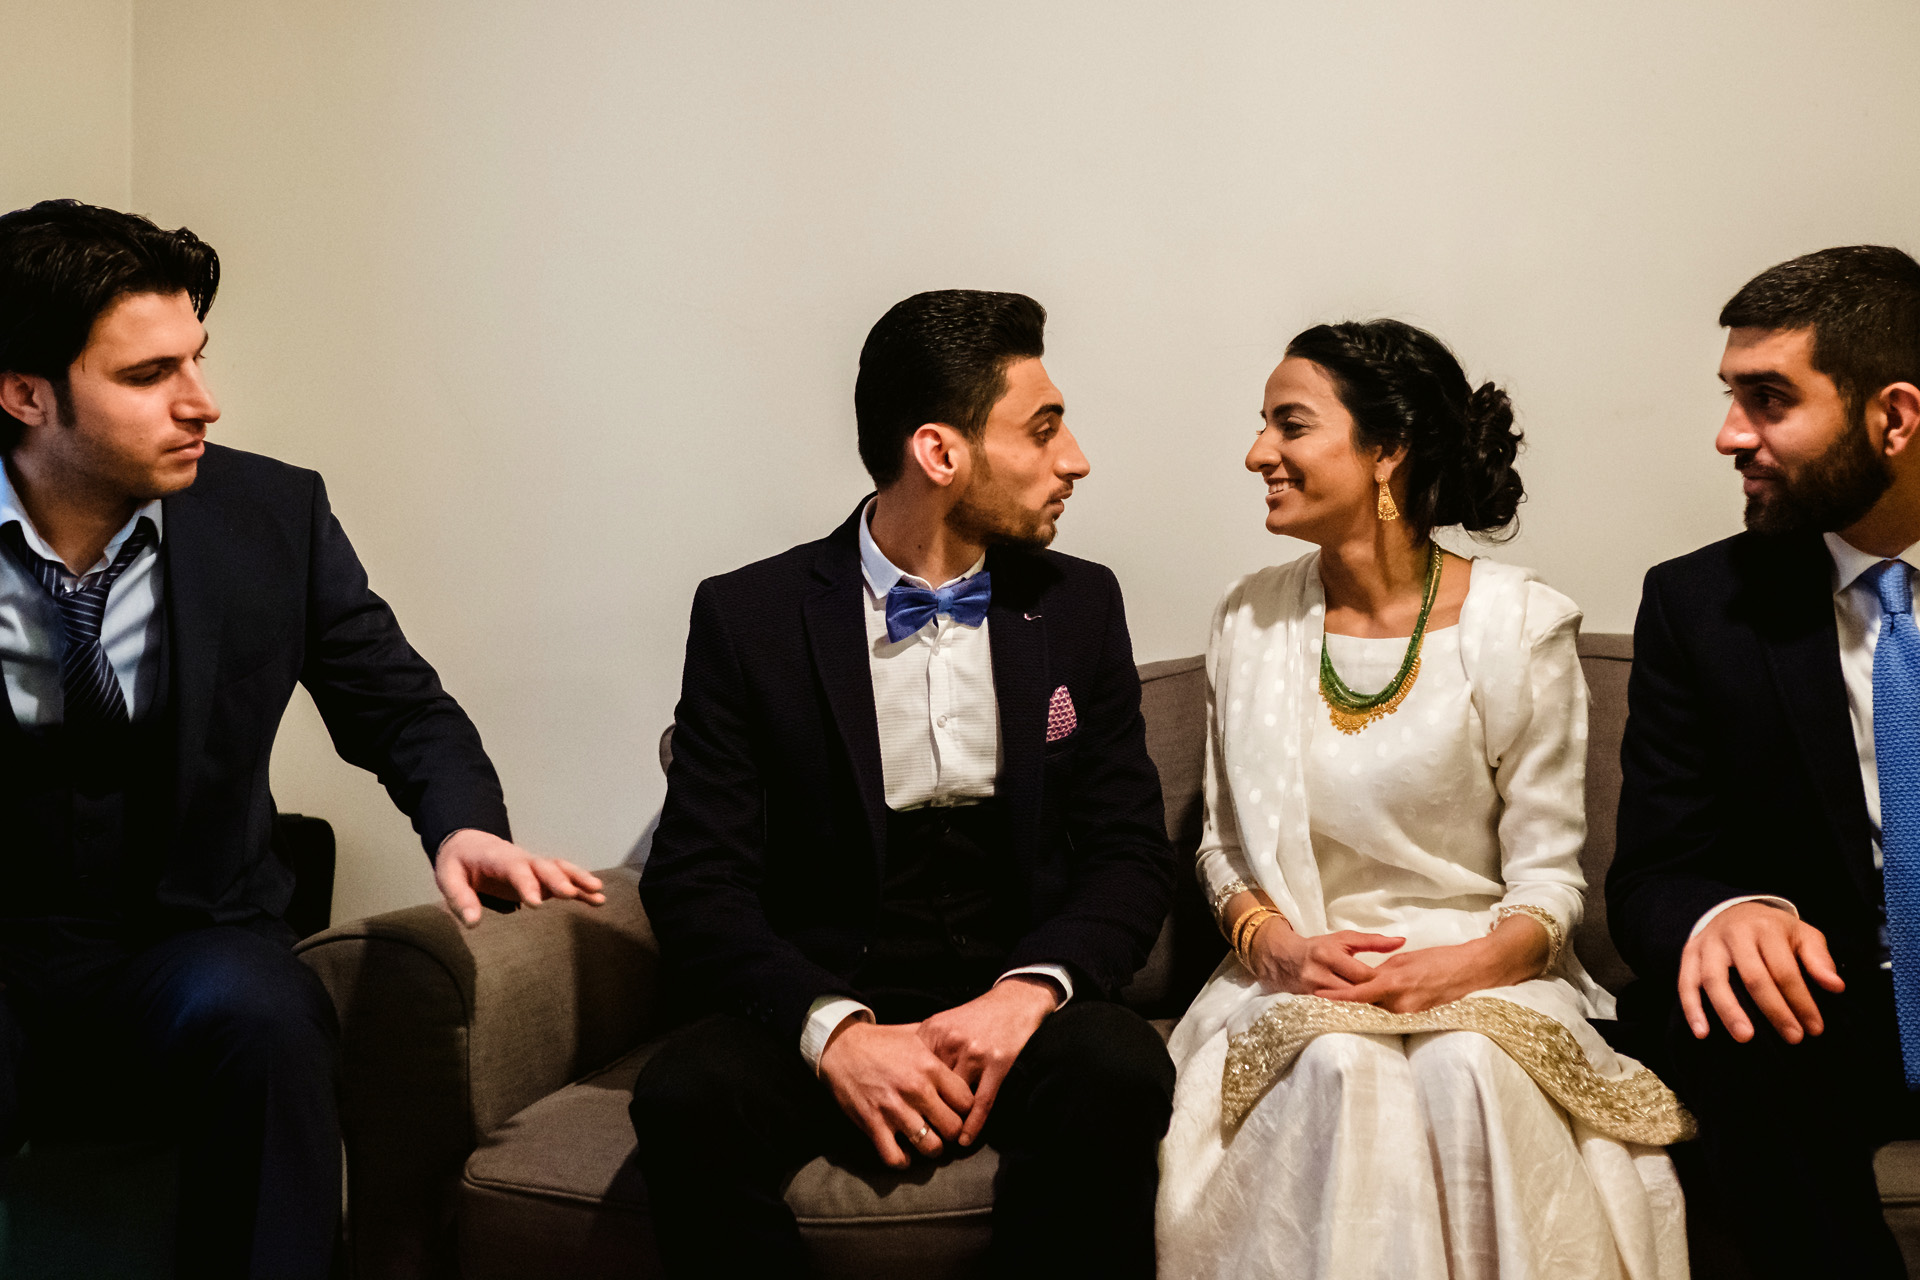 Istanbul, Turkey Elopement Image of the Imam | the bride smiles as she looks at the groom